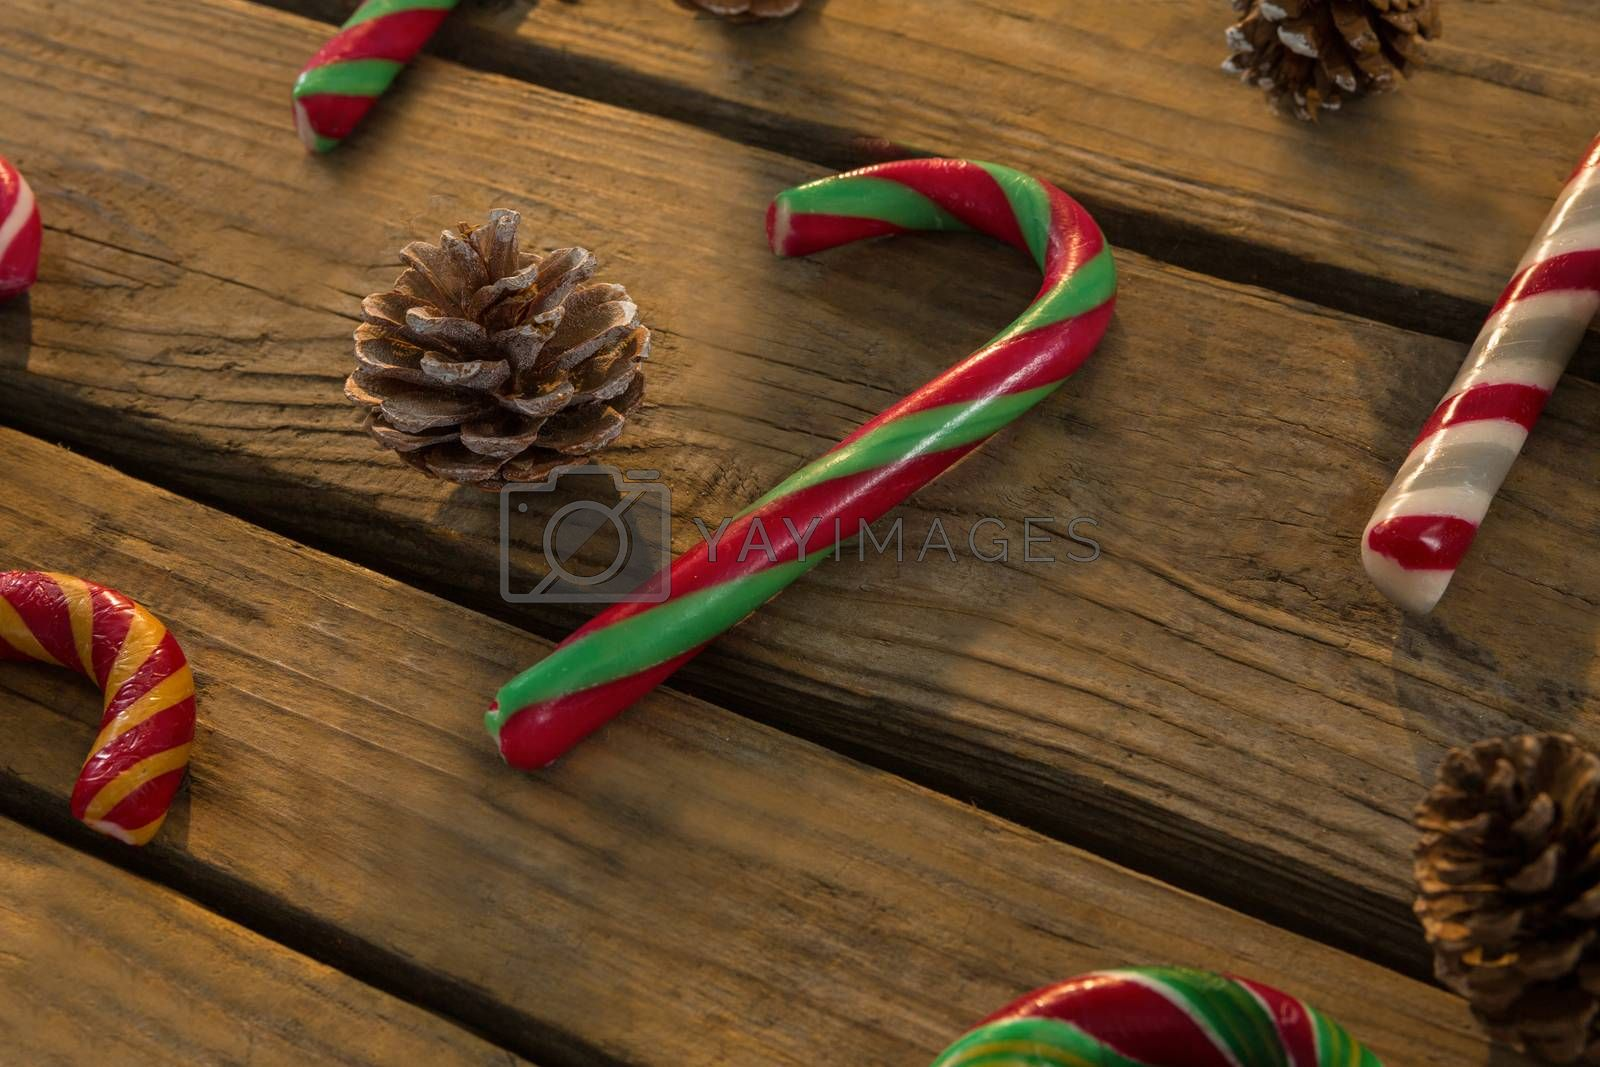 High angle view of candy canes and pine cones on table by Wavebreakmedia